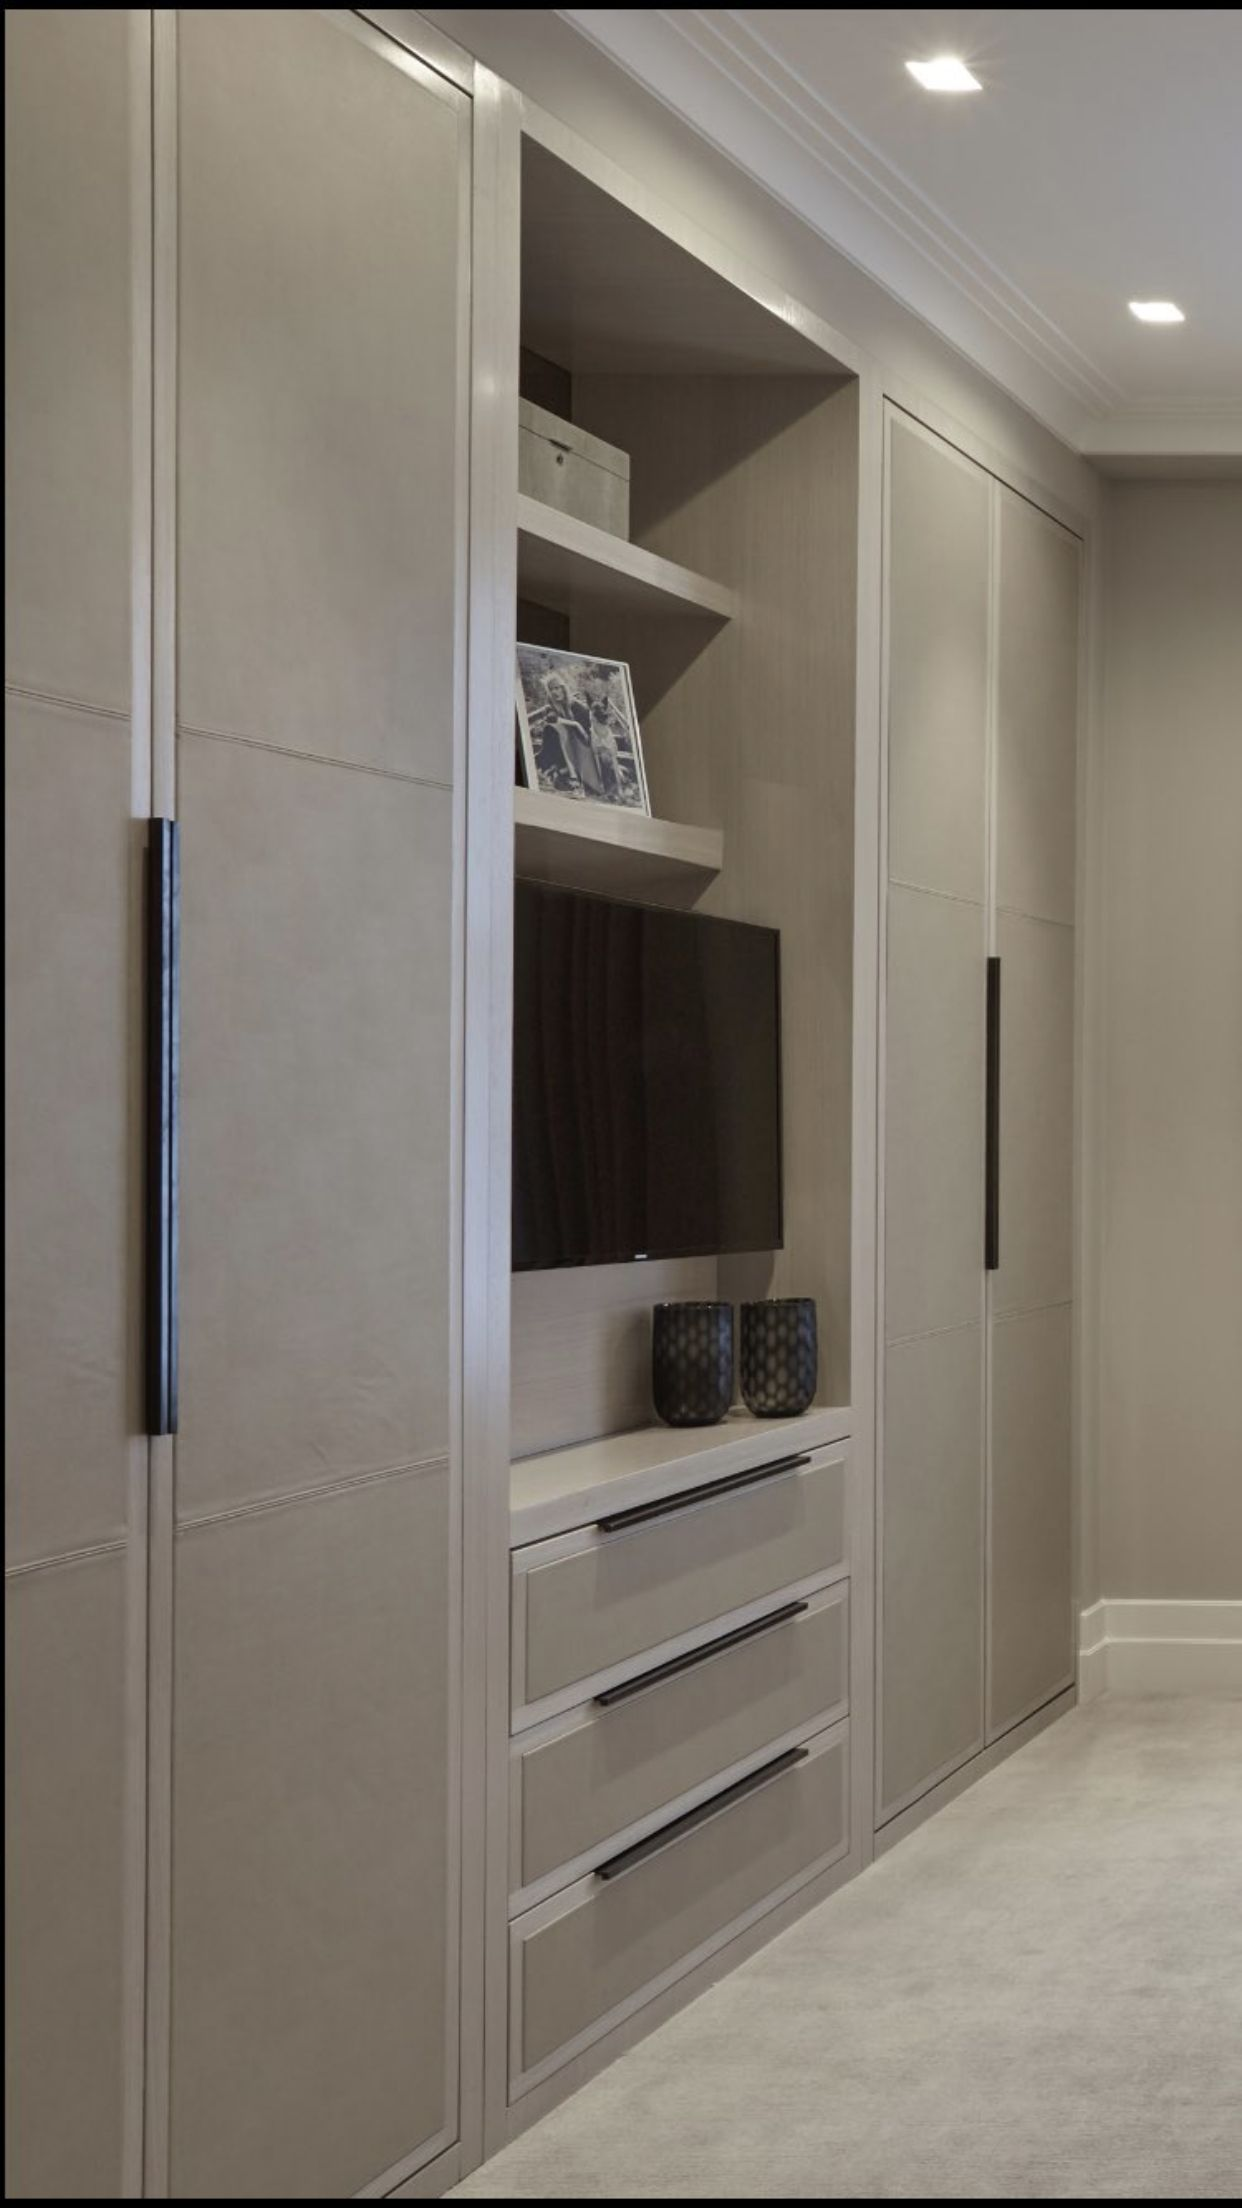 20 Chic Wardrobe Design Ideas For Your Small Bedroom 2020